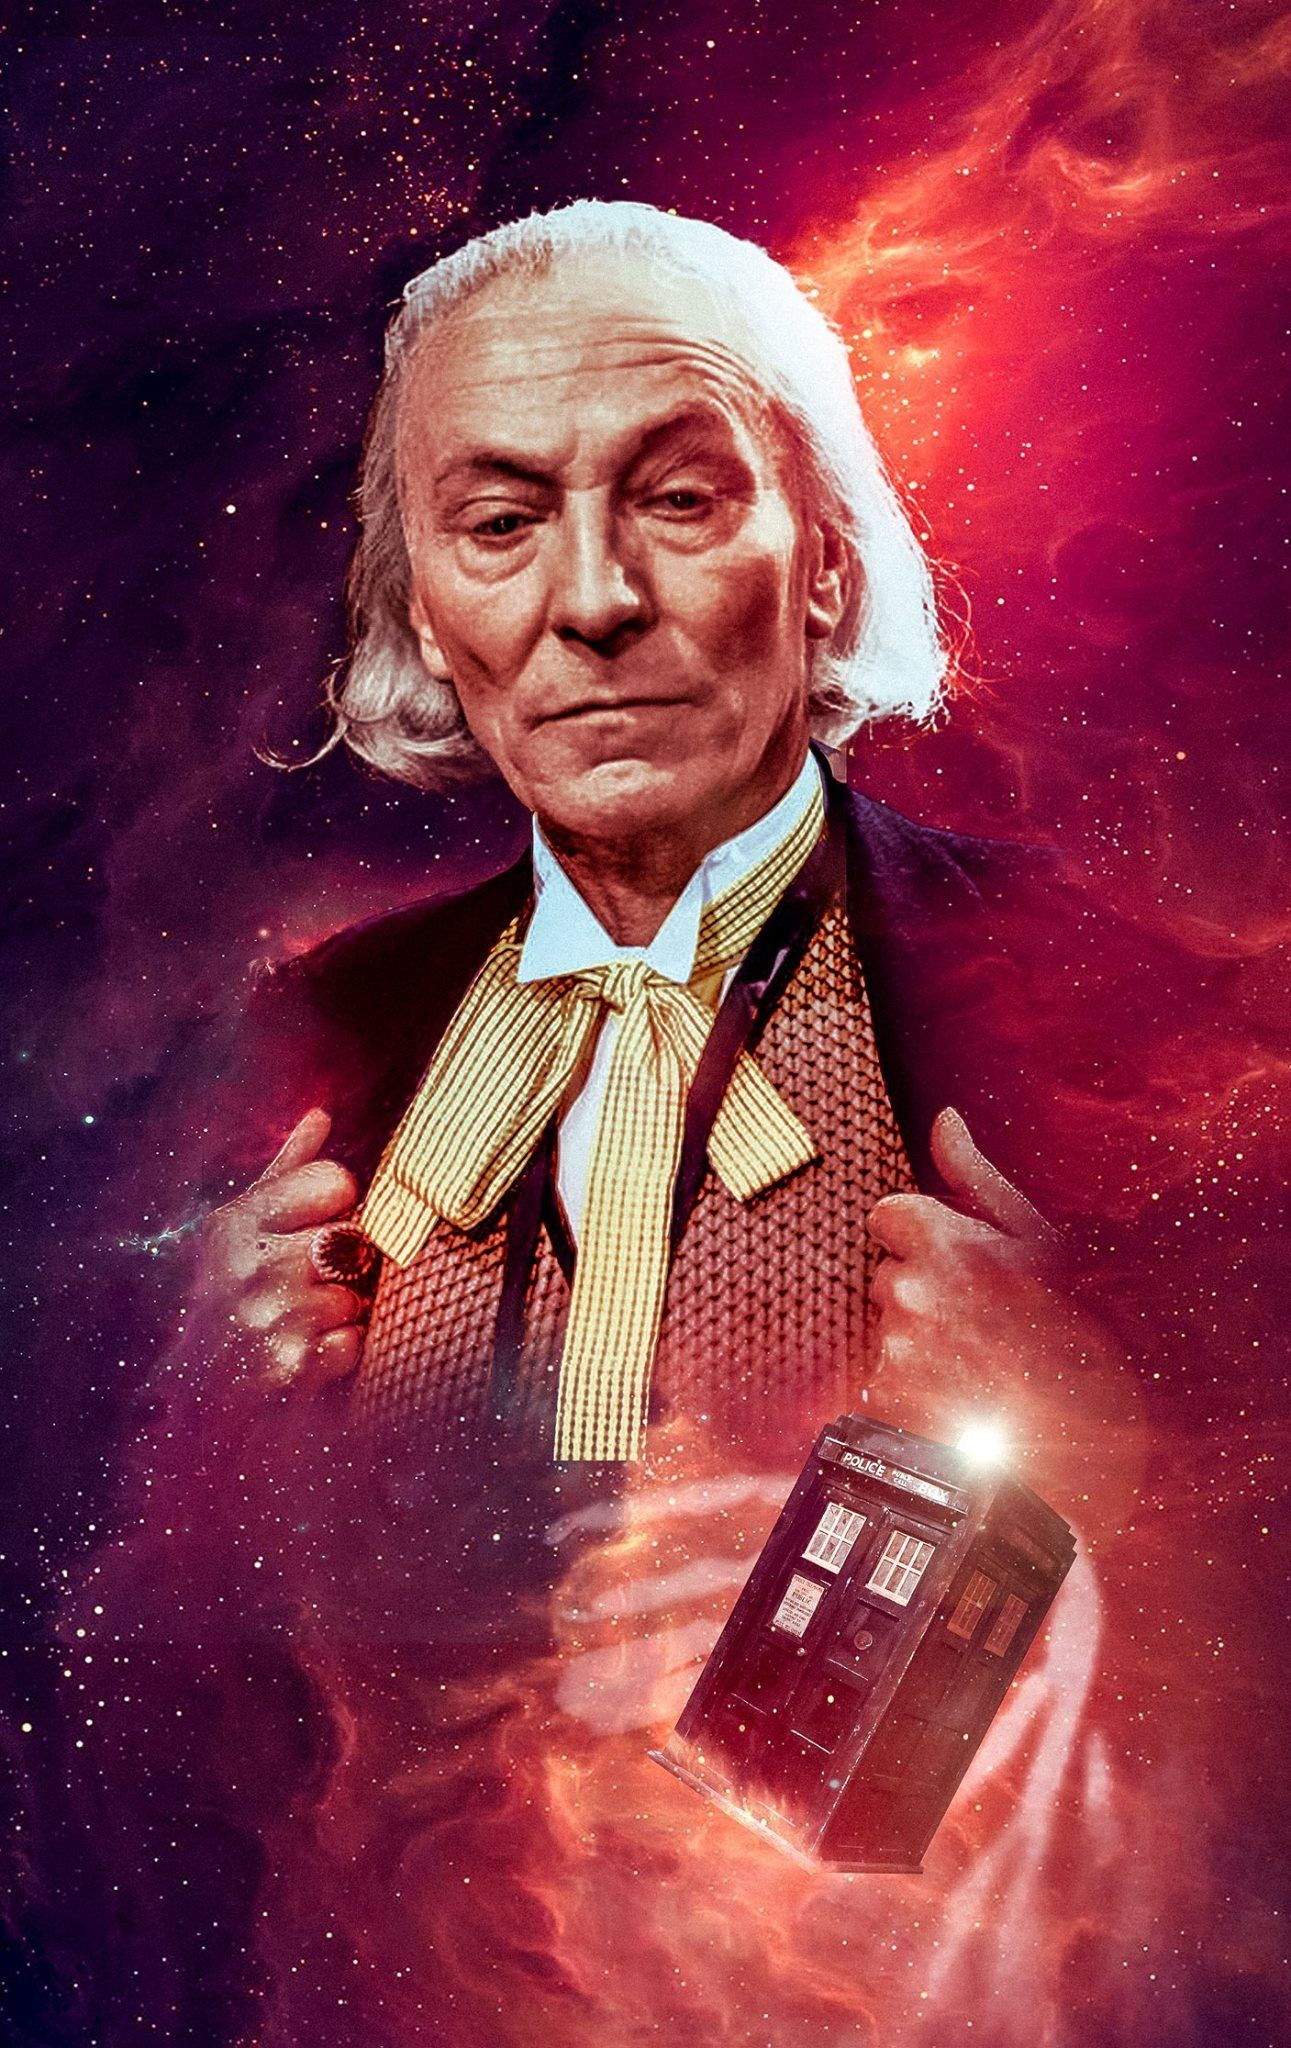 Pin By Rutelia Arcos On Doctor Who Doctor Who Art Classic Doctor Who Doctor Who